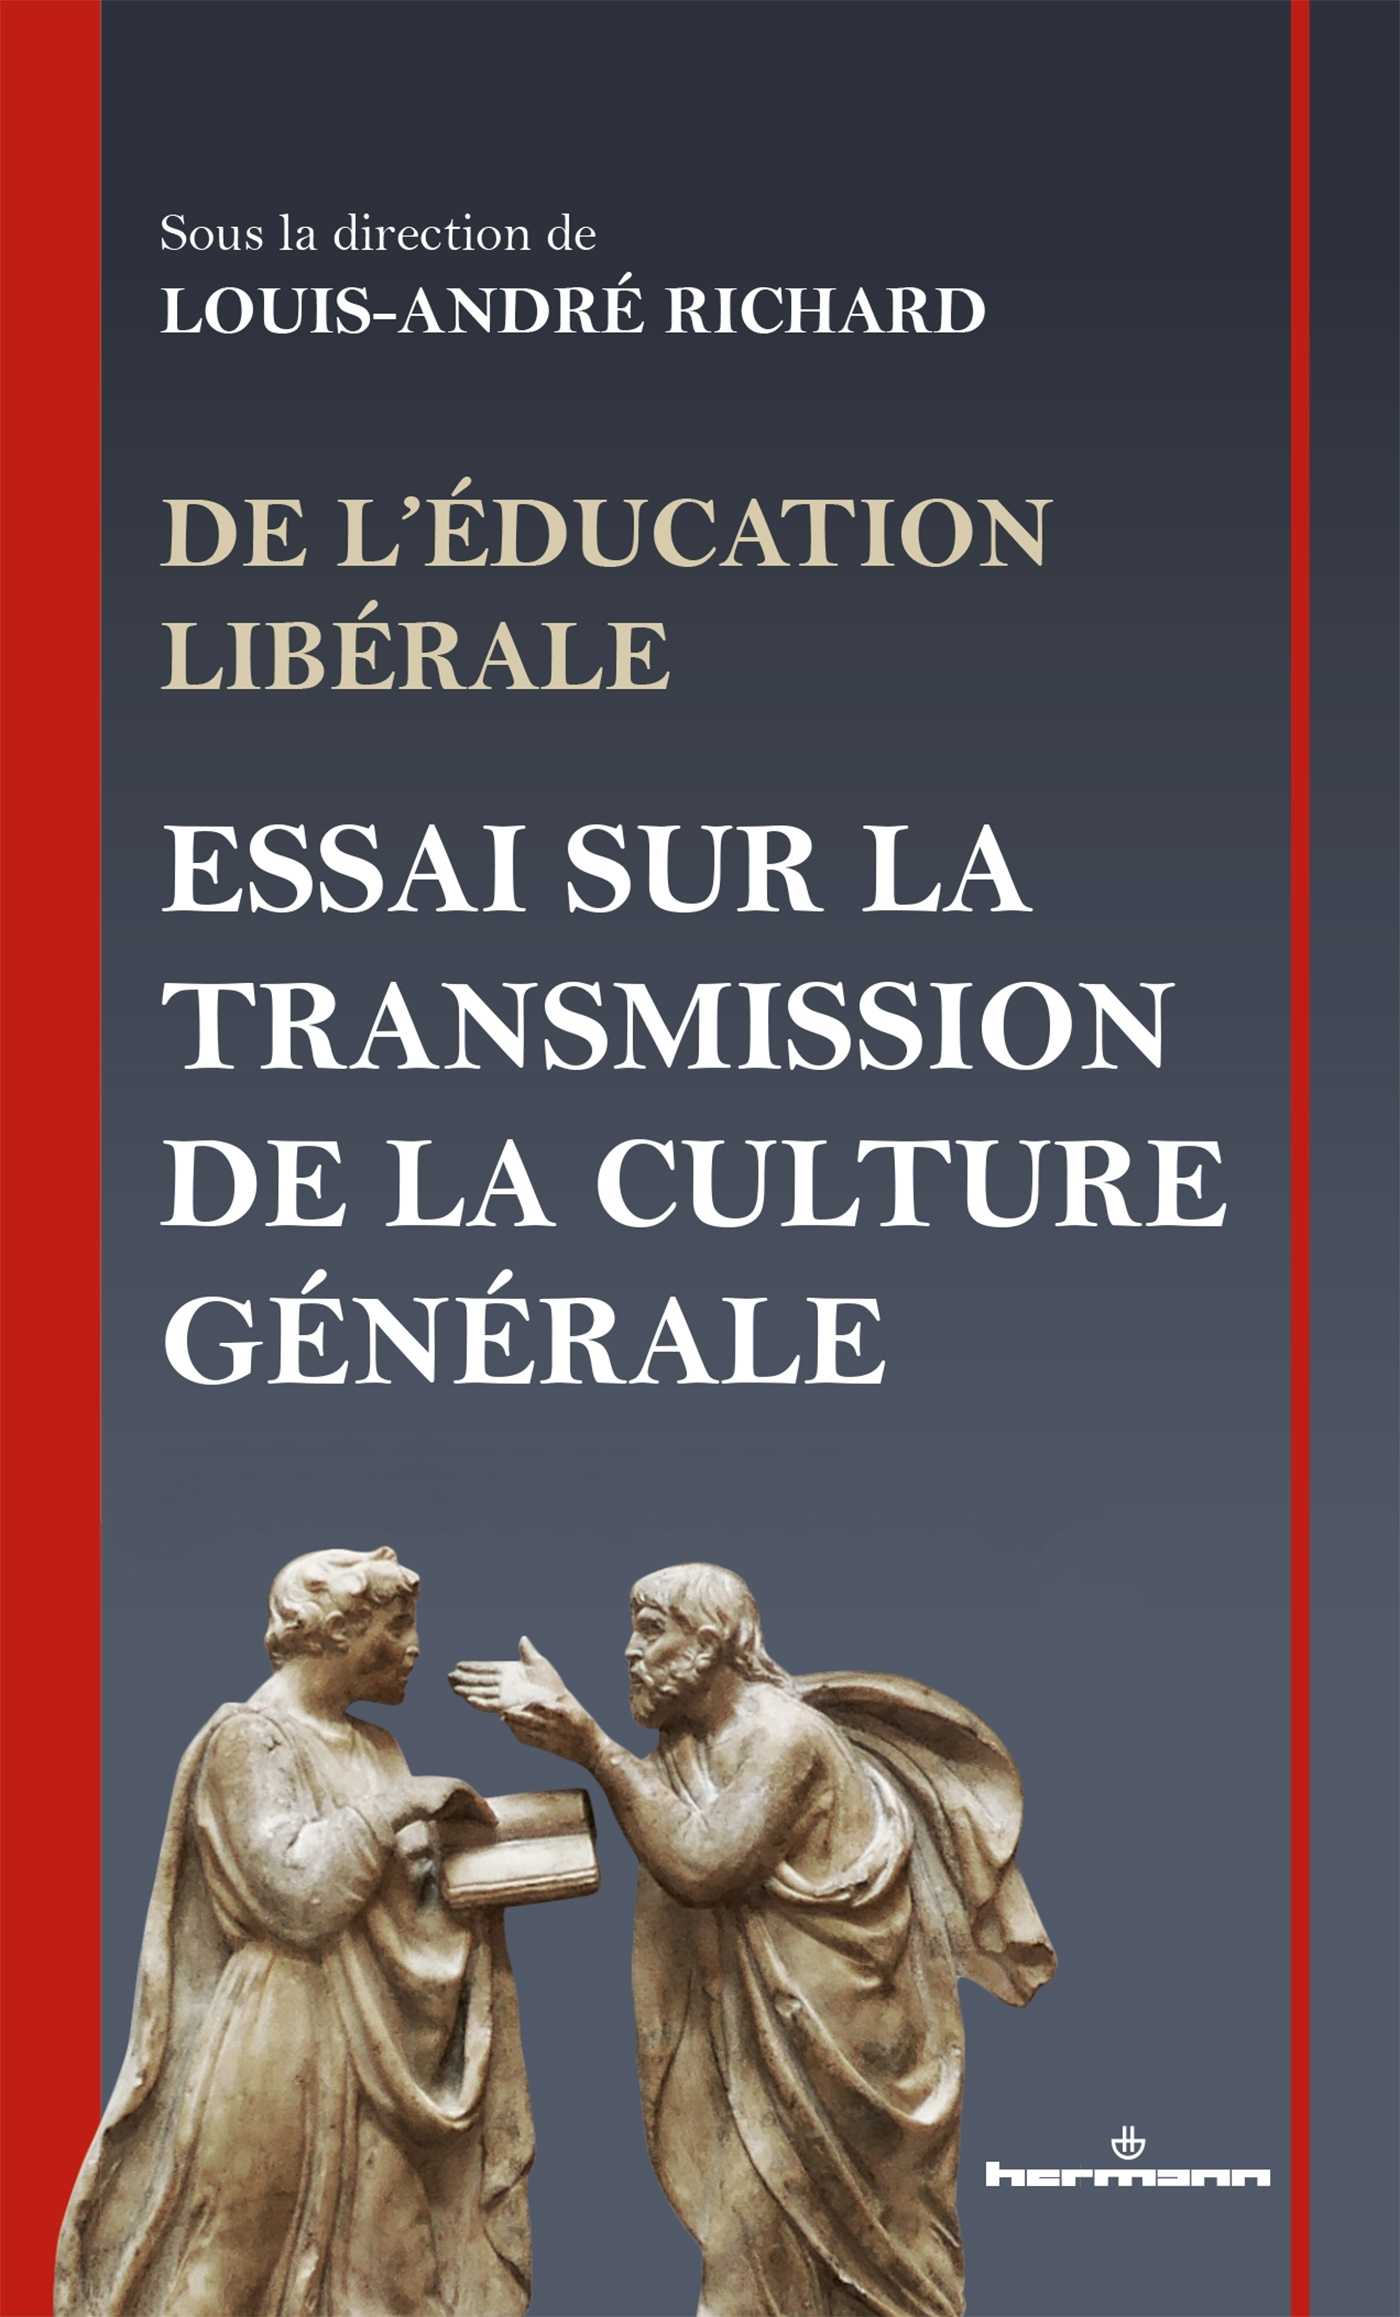 DE L'EDUCATION LIBERALE - ESSAI SUR LA TRANSMISSION DE LA CULTURE GENERALE